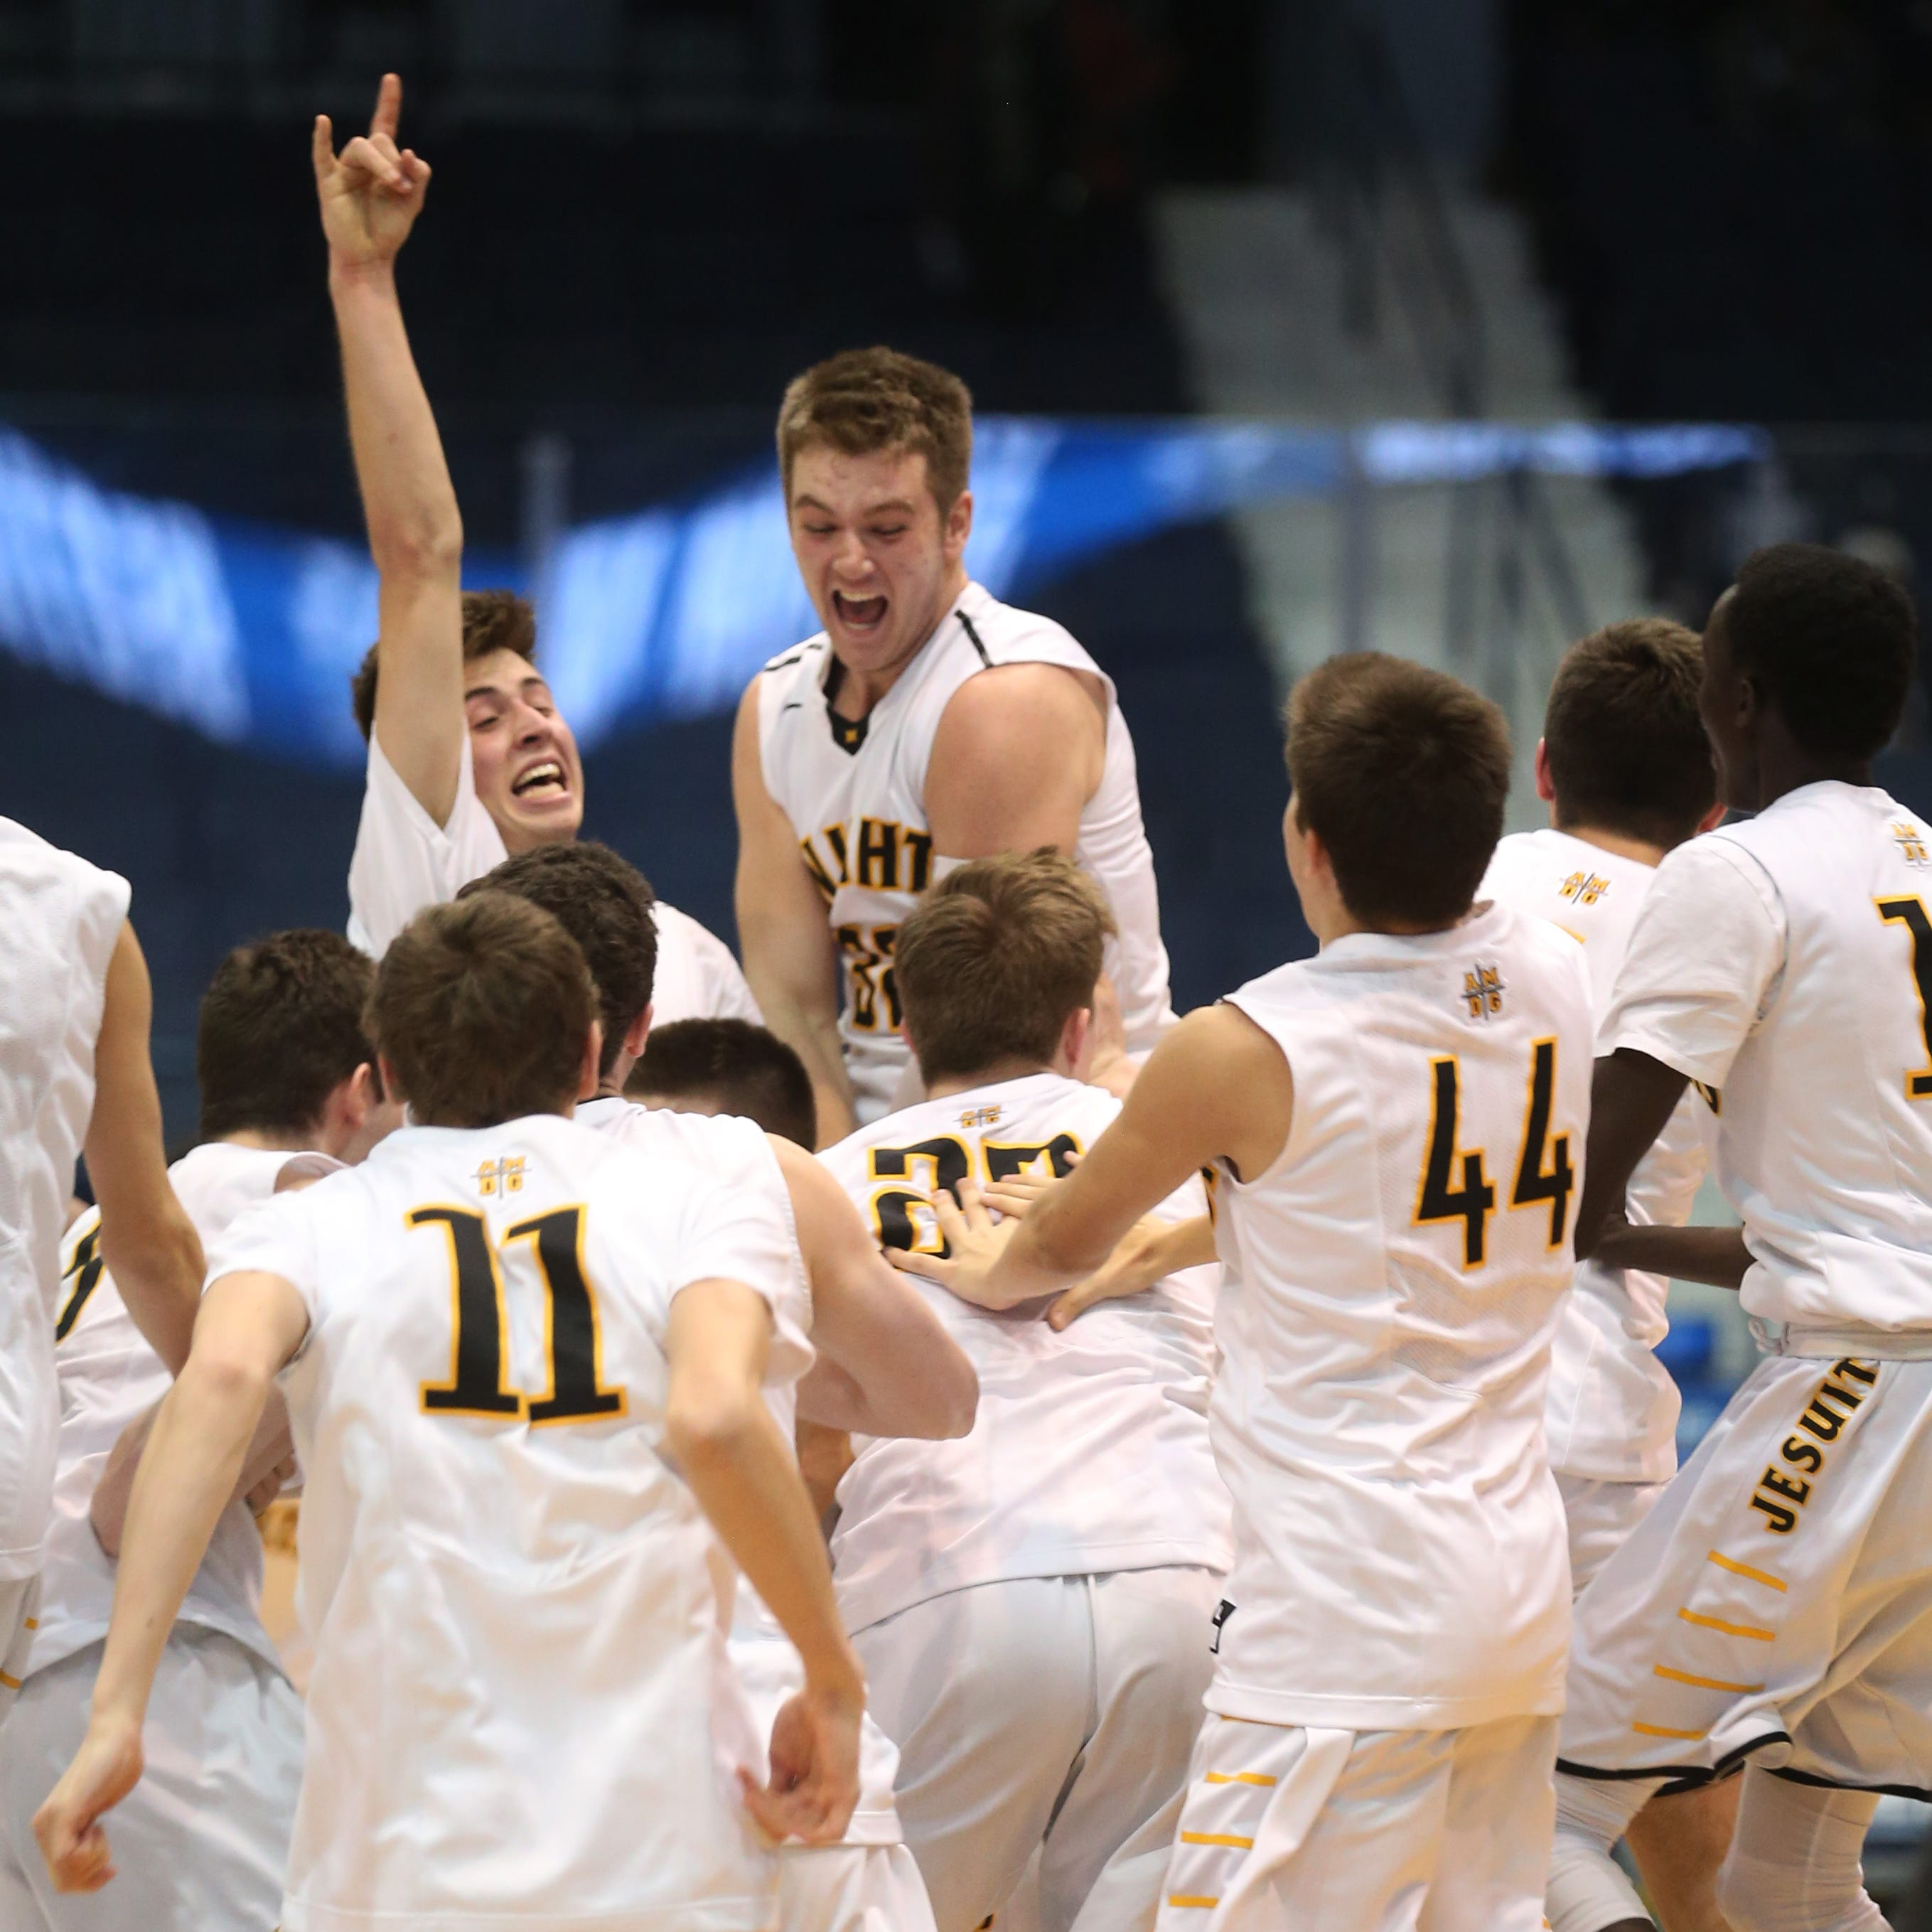 McQuaid stops UPrep, claims back-to-back Class AA titles